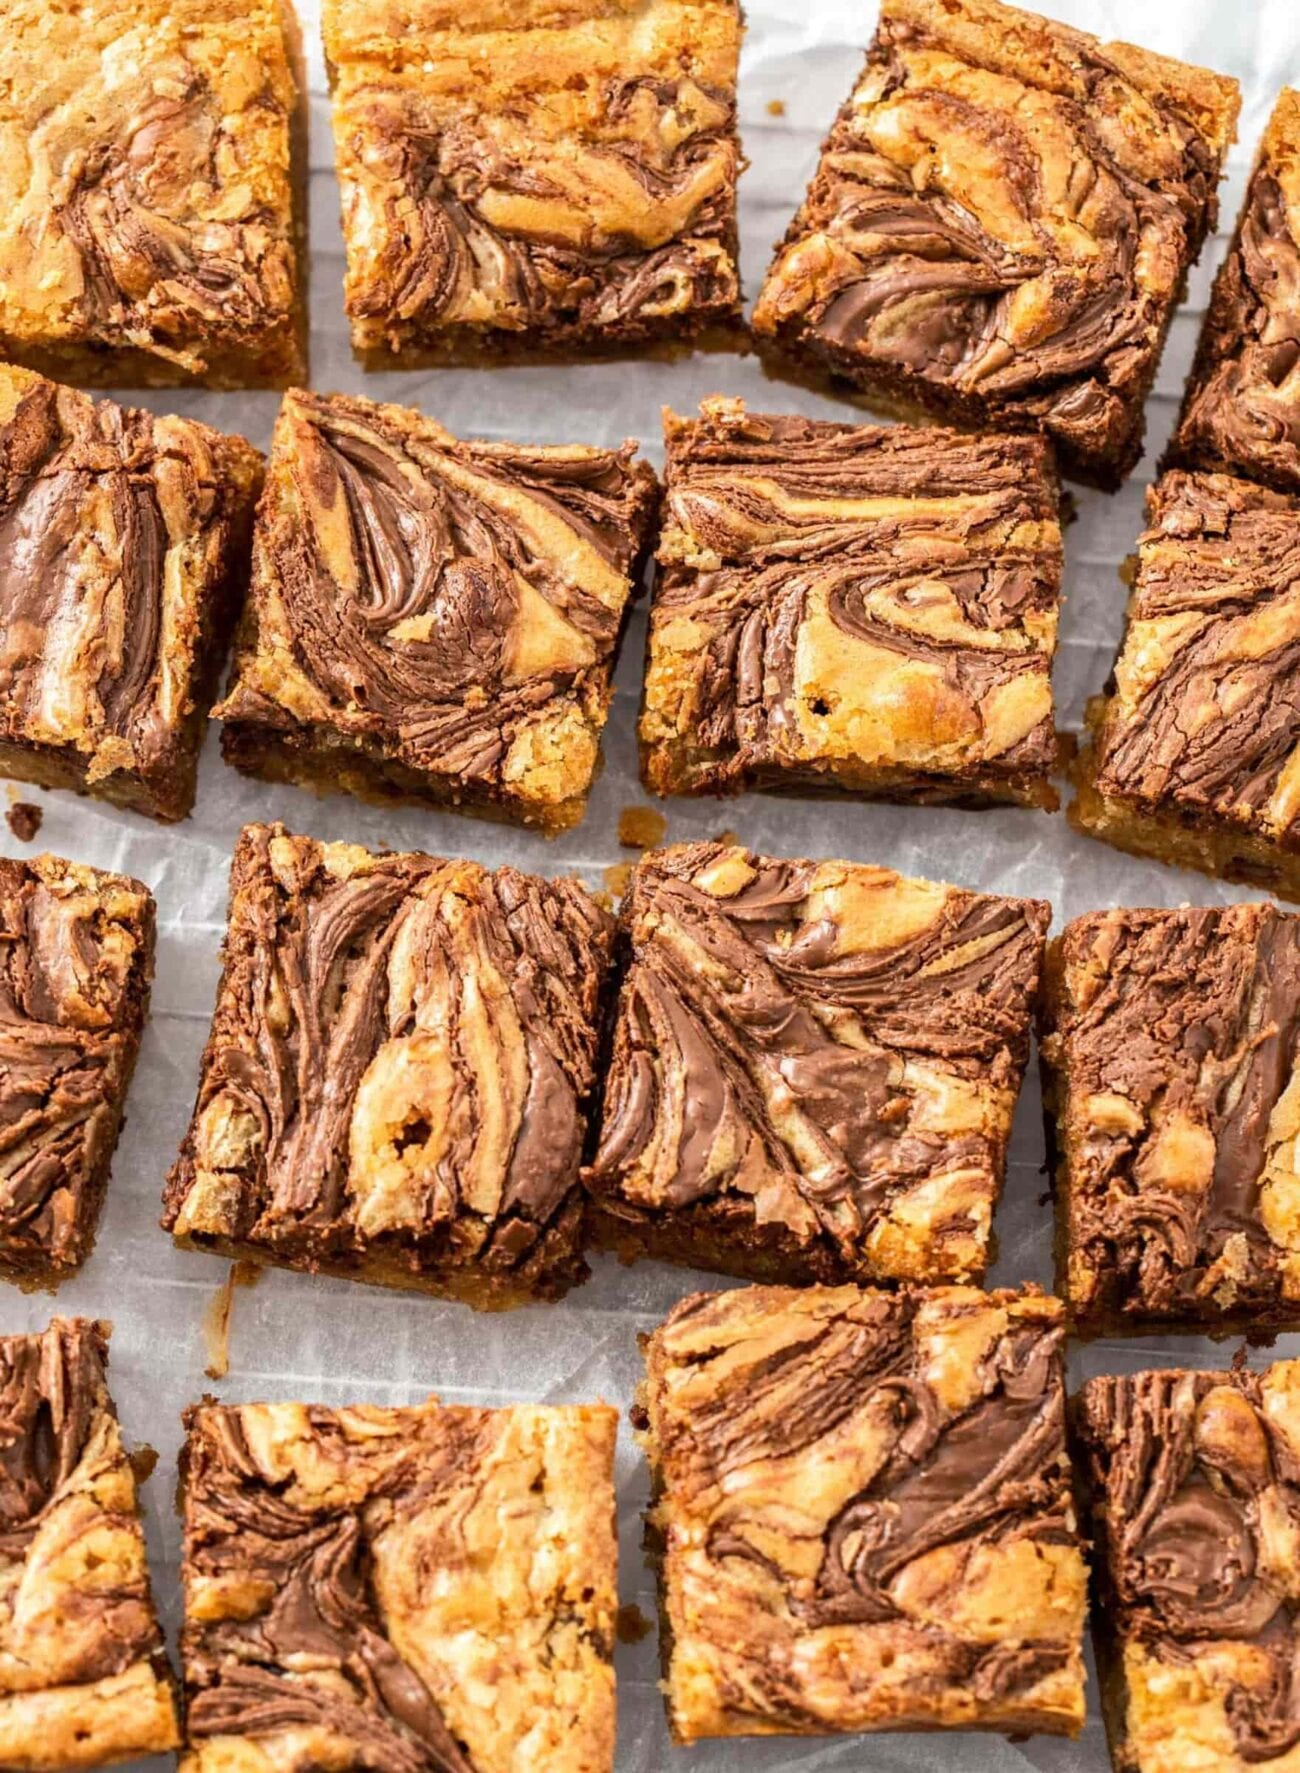 What can be better than brownies? That's right, chewy and delicious blondies! Try these sweet and easy recipes for your next blondie craving!